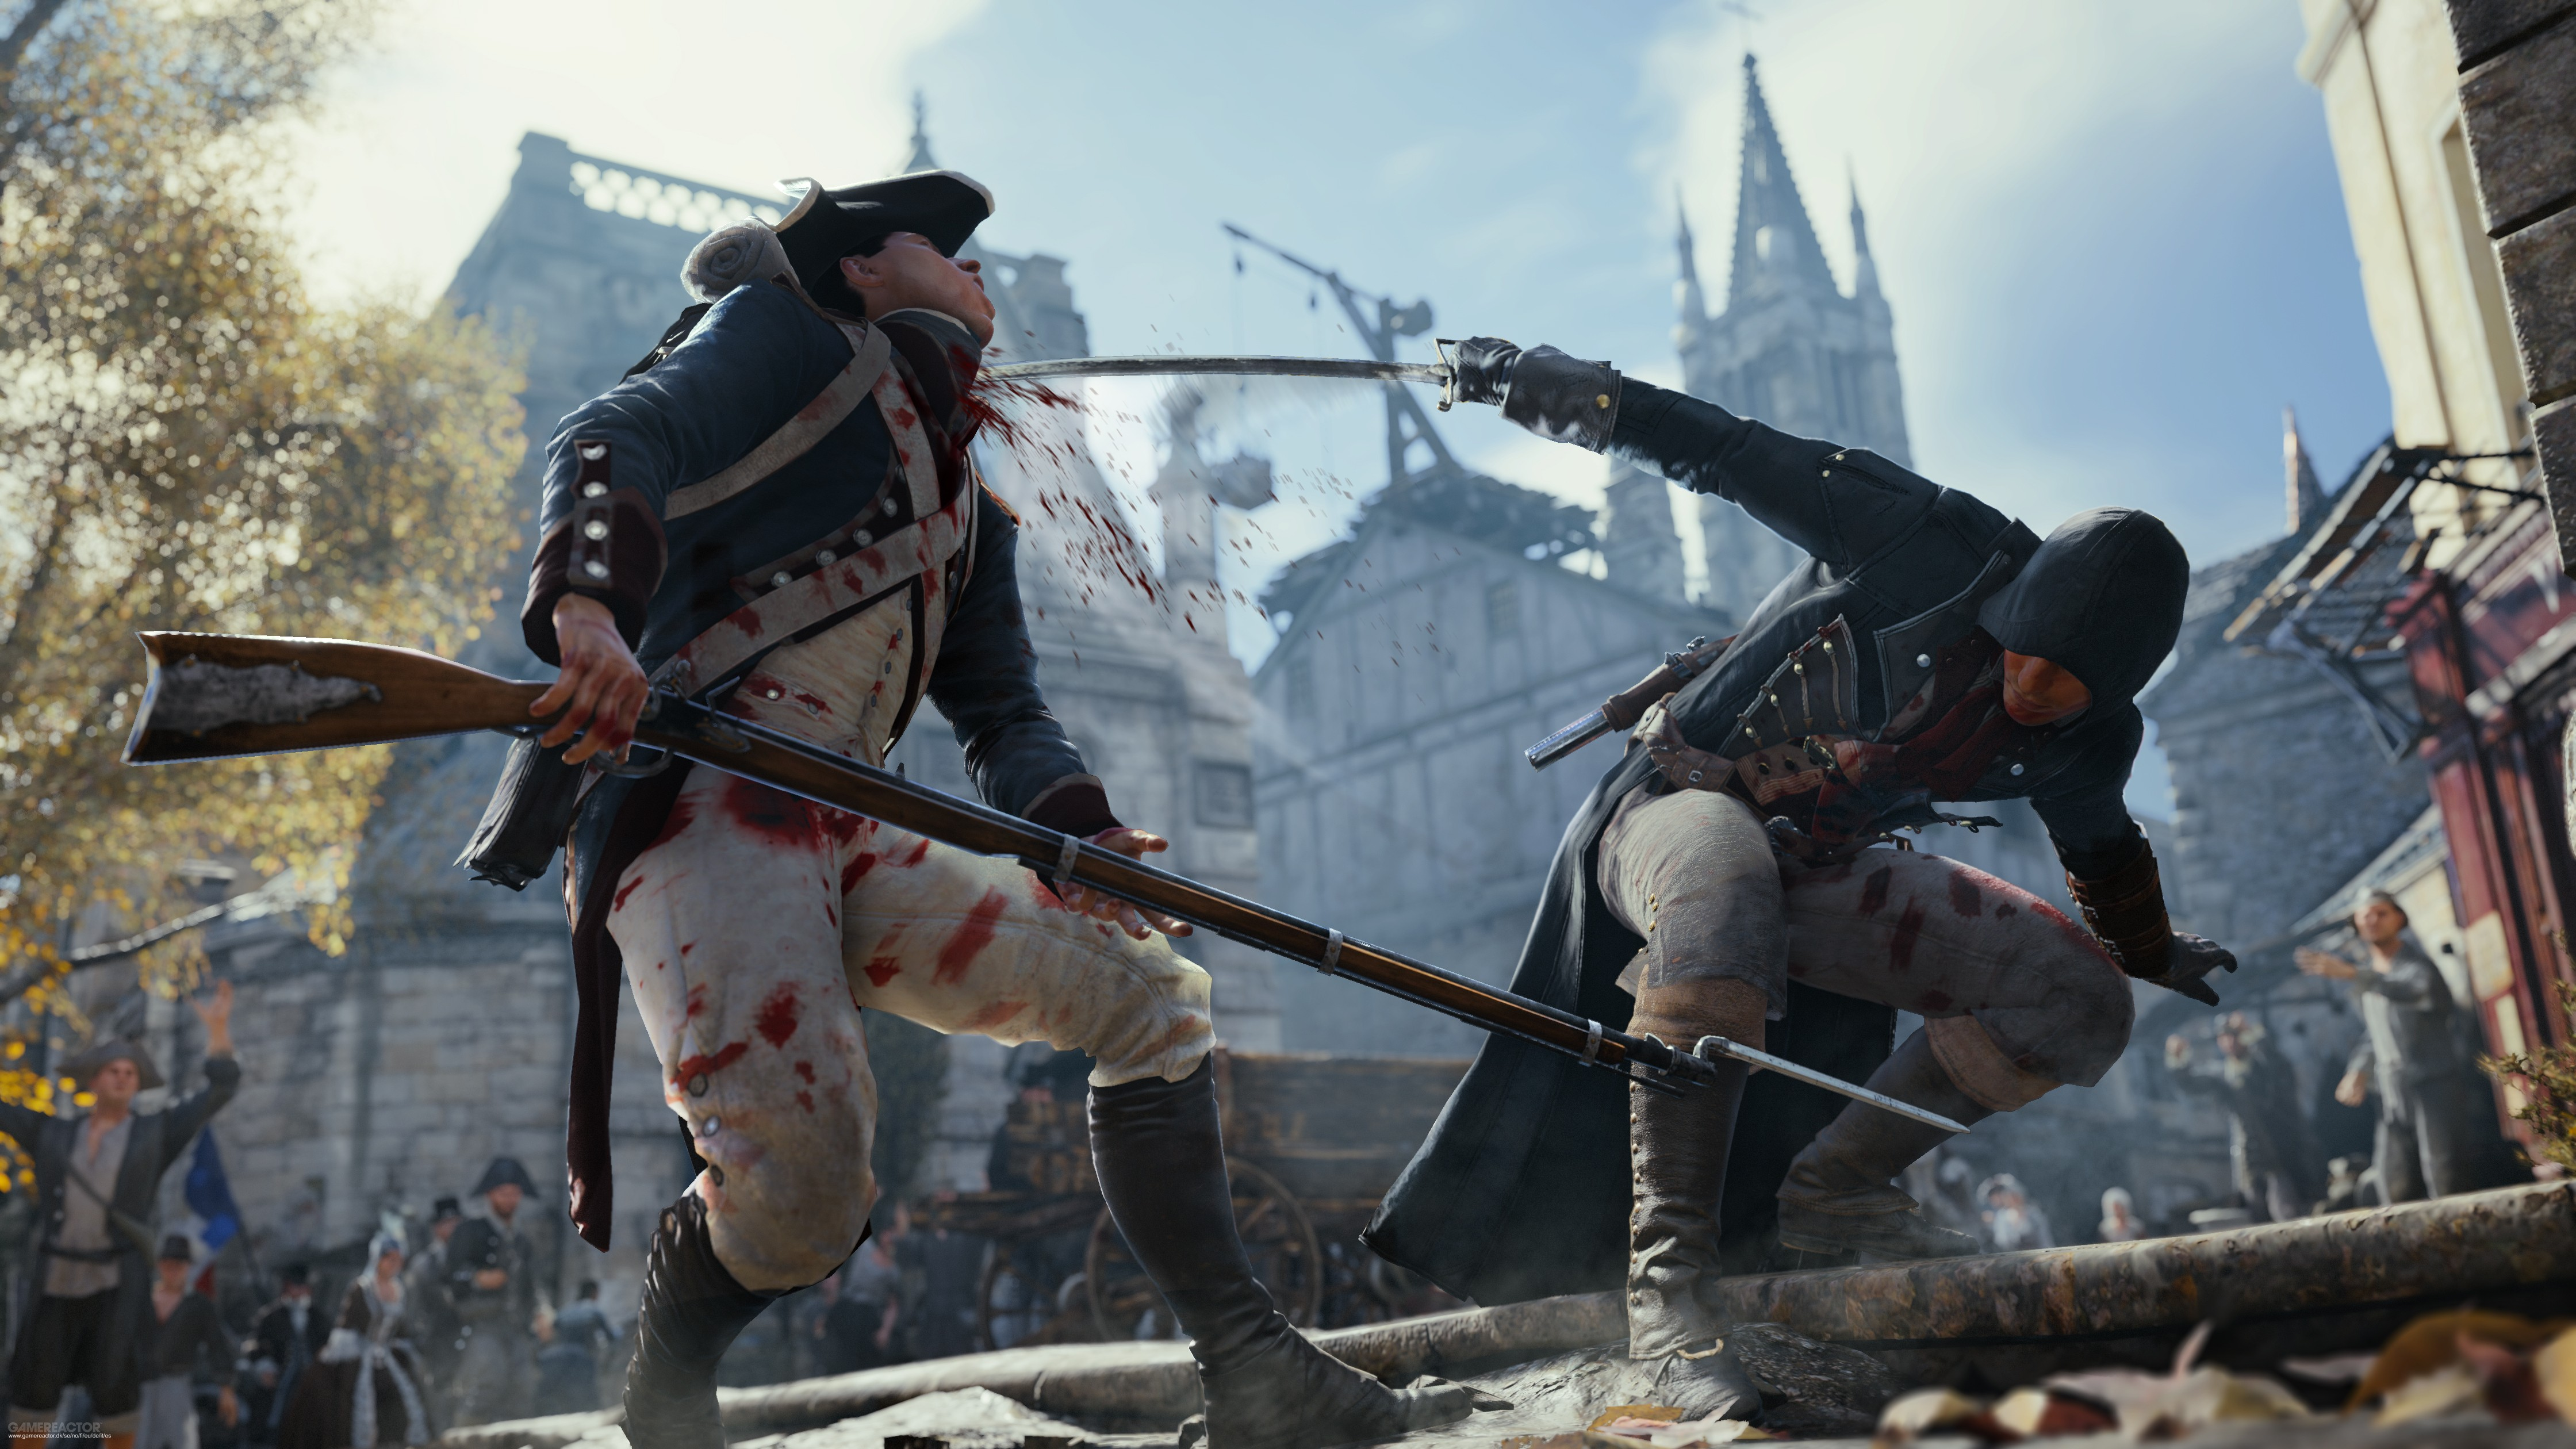 [Discussão] Assassin's Creed: Unity Urtjusigascreensassassins_1183904b